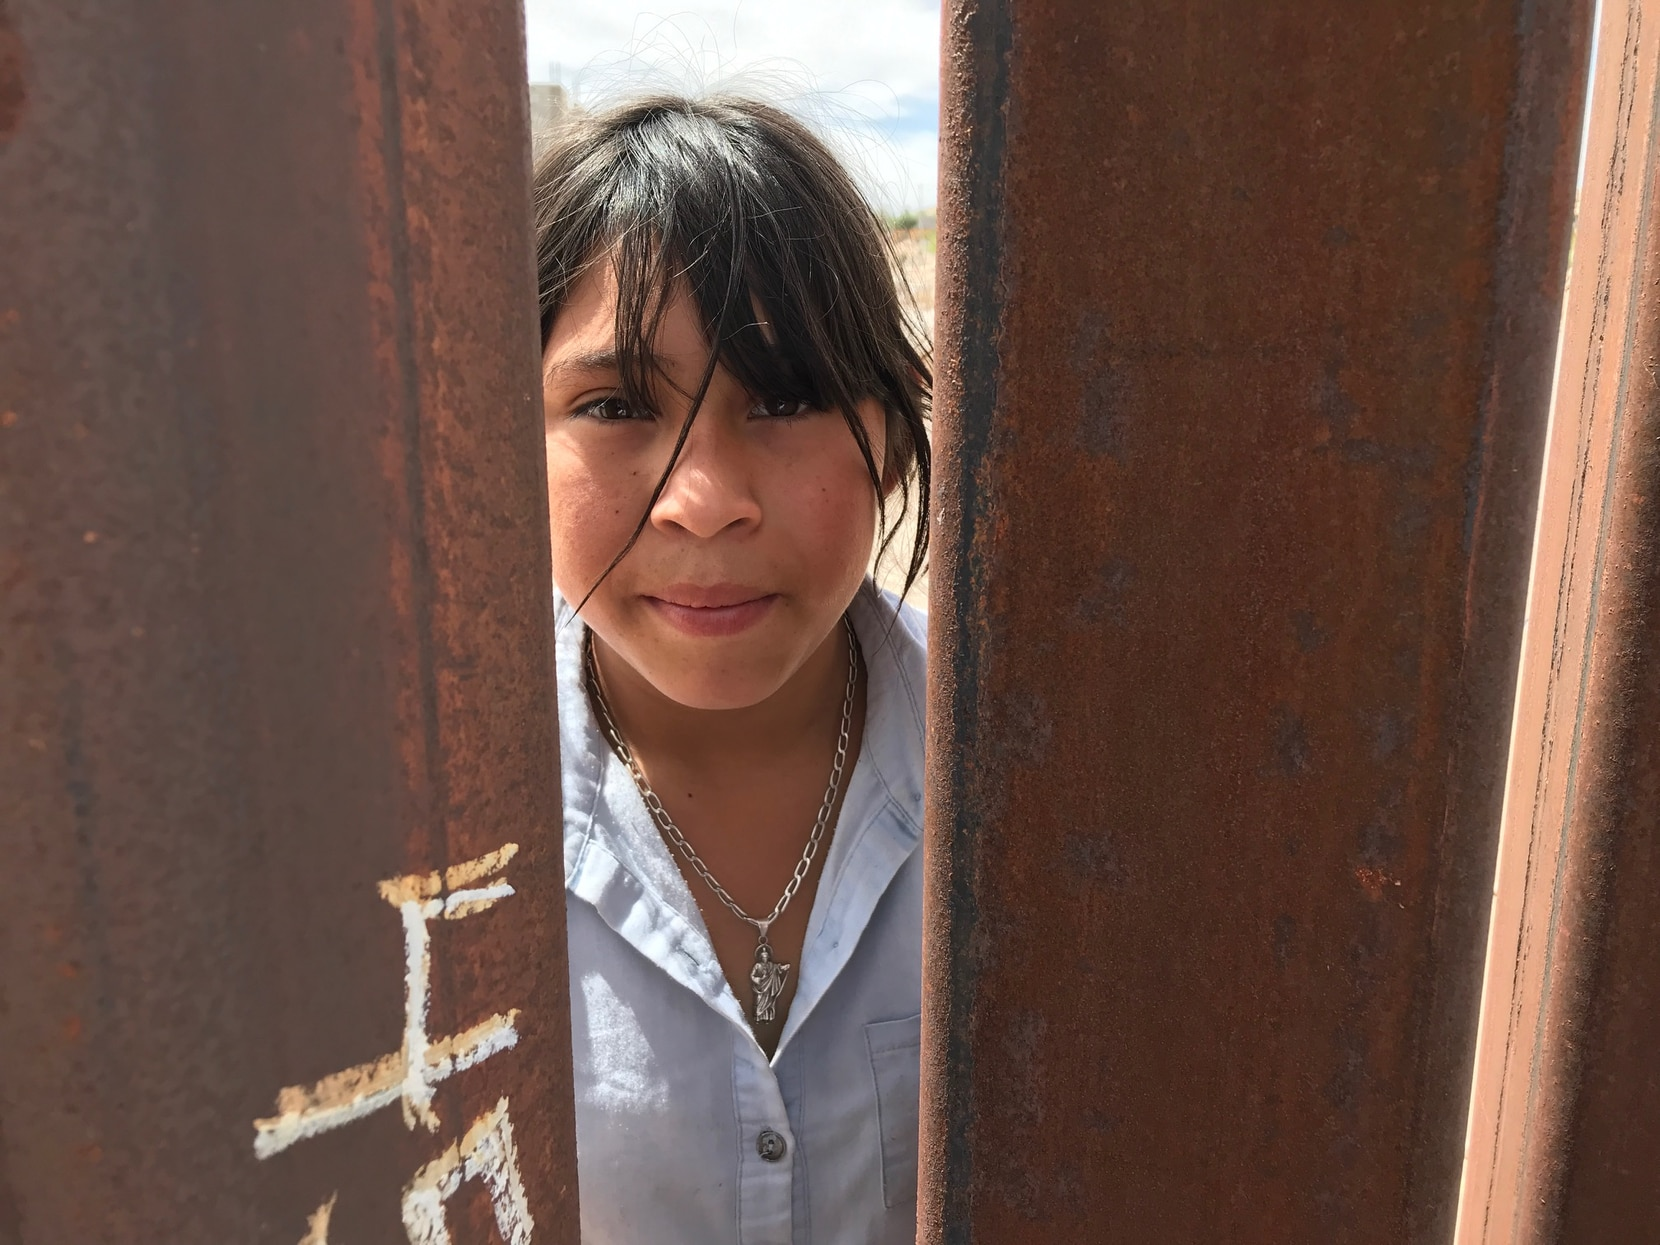 Michelle Aide Campos, 12, isn't happy with barriers that went up almost a year ago near her home in Anapra, Mexico. But, she added, the steel, rustic bollard fence is better than a concrete wall.